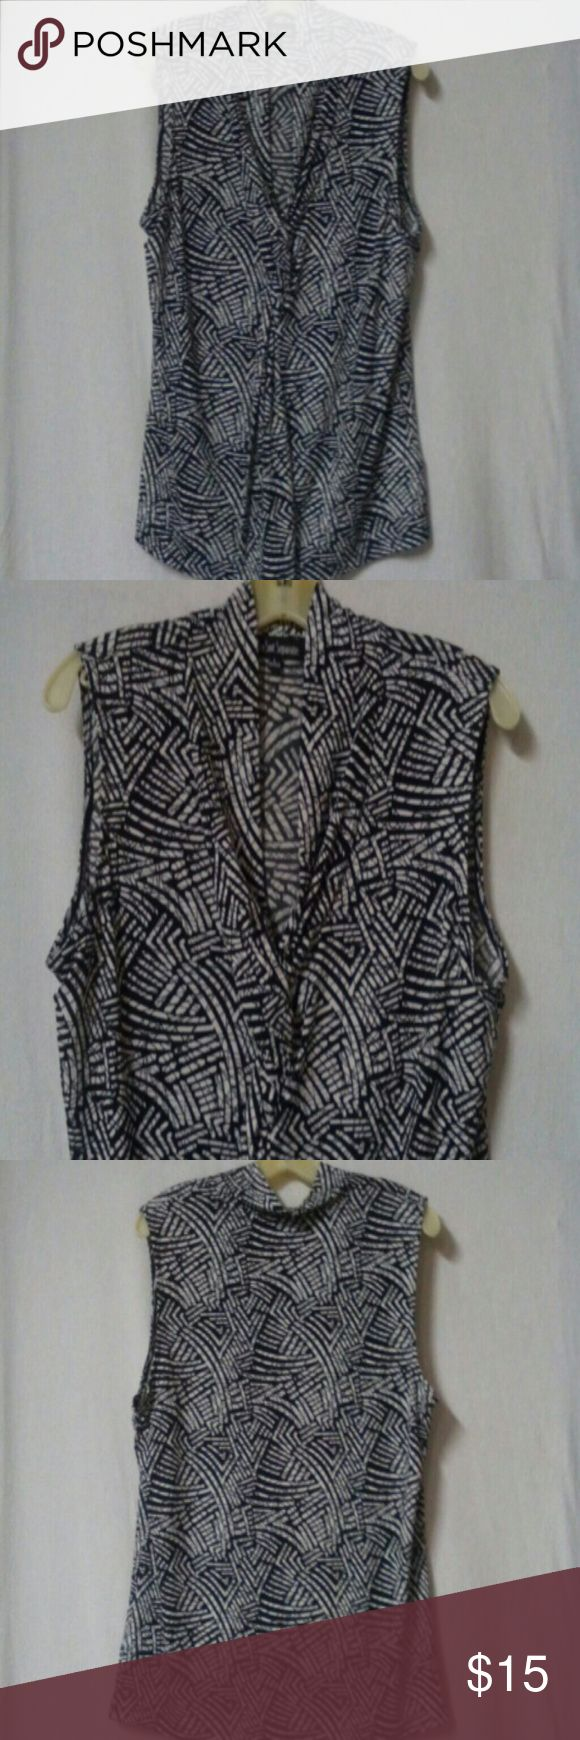 """Le suit separates women size large tank top Barely worn, black and white pattern, sleeveless, knotted v neck, polyester and spandex, chest 46"""", length 25"""" Le Suit Tops Tank Tops"""